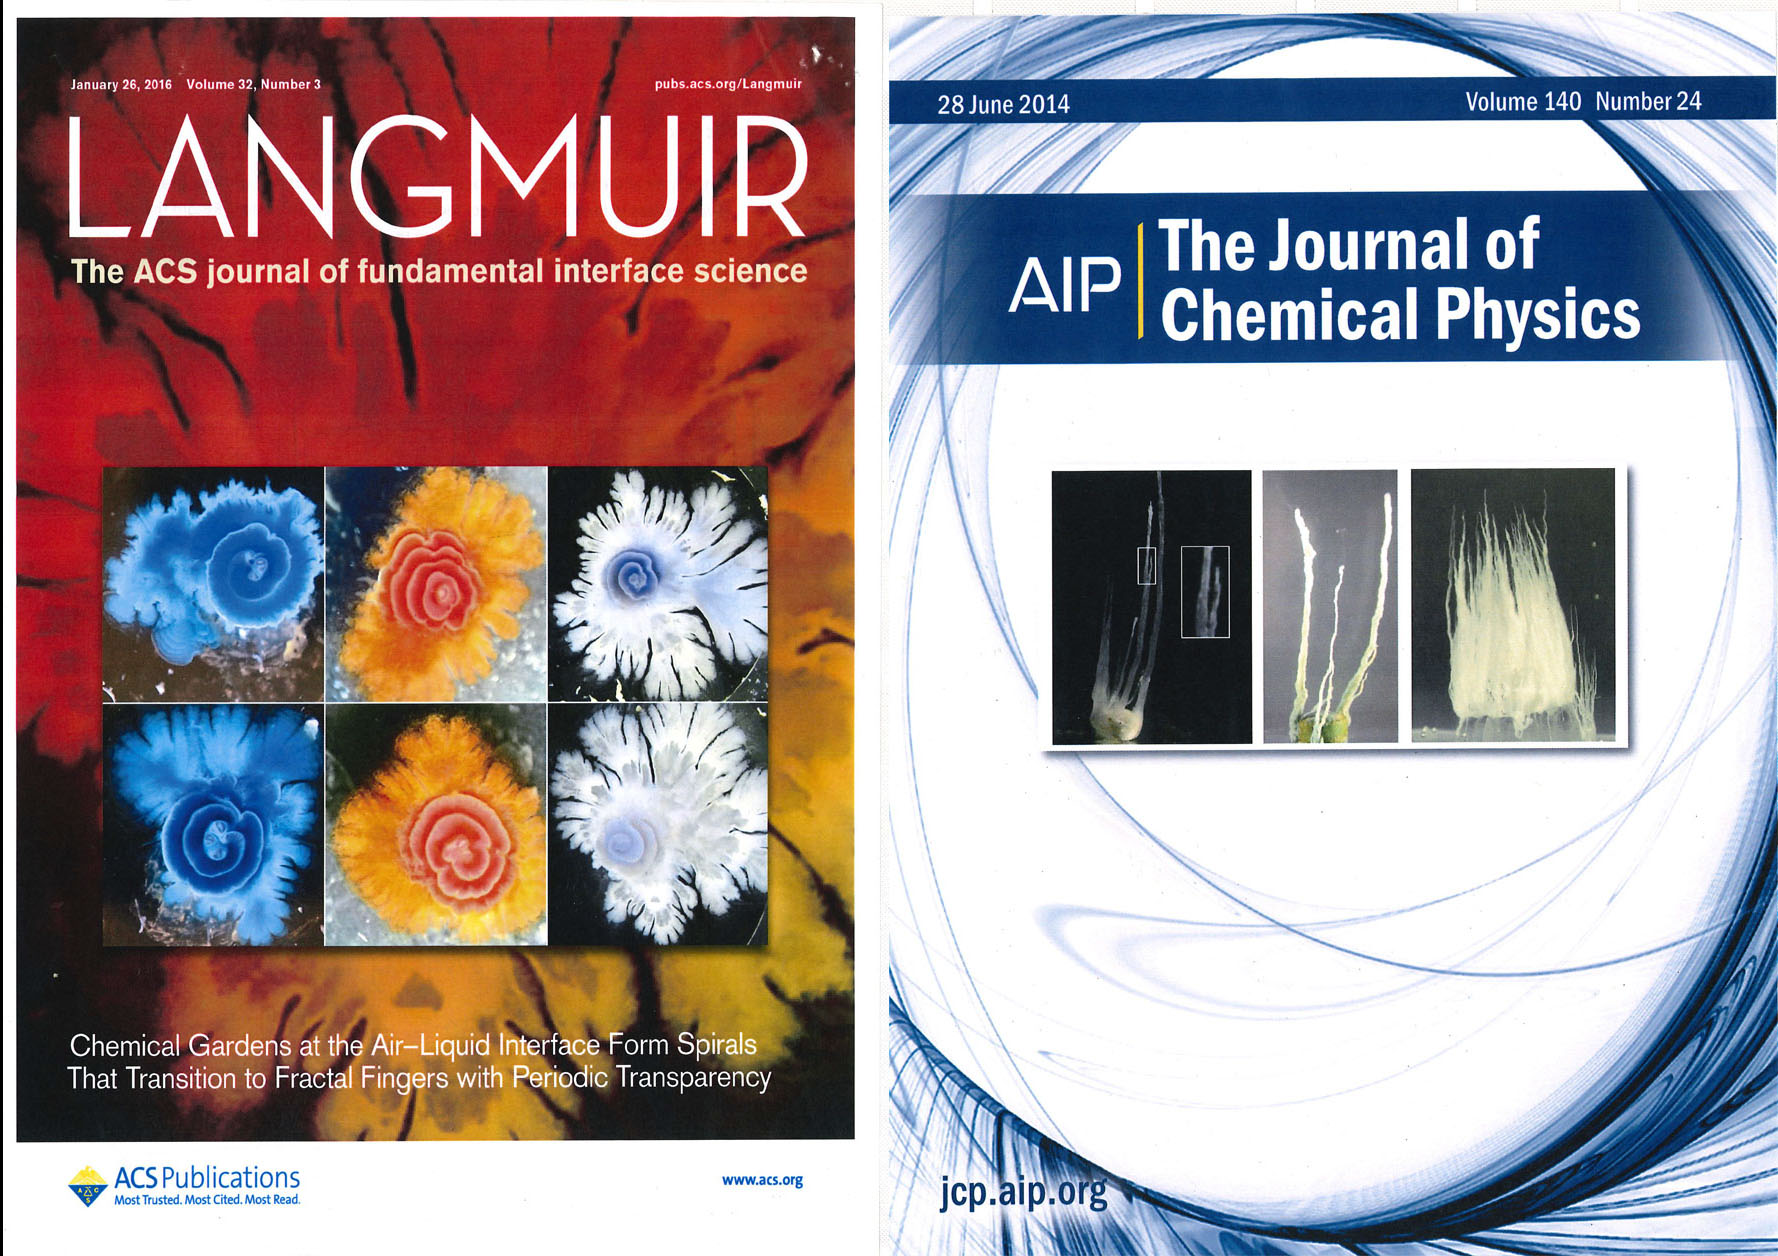 Langmuir: The ACS journal of Fundamental interface science Cover, AIP The journal of Chemical Physics Cover